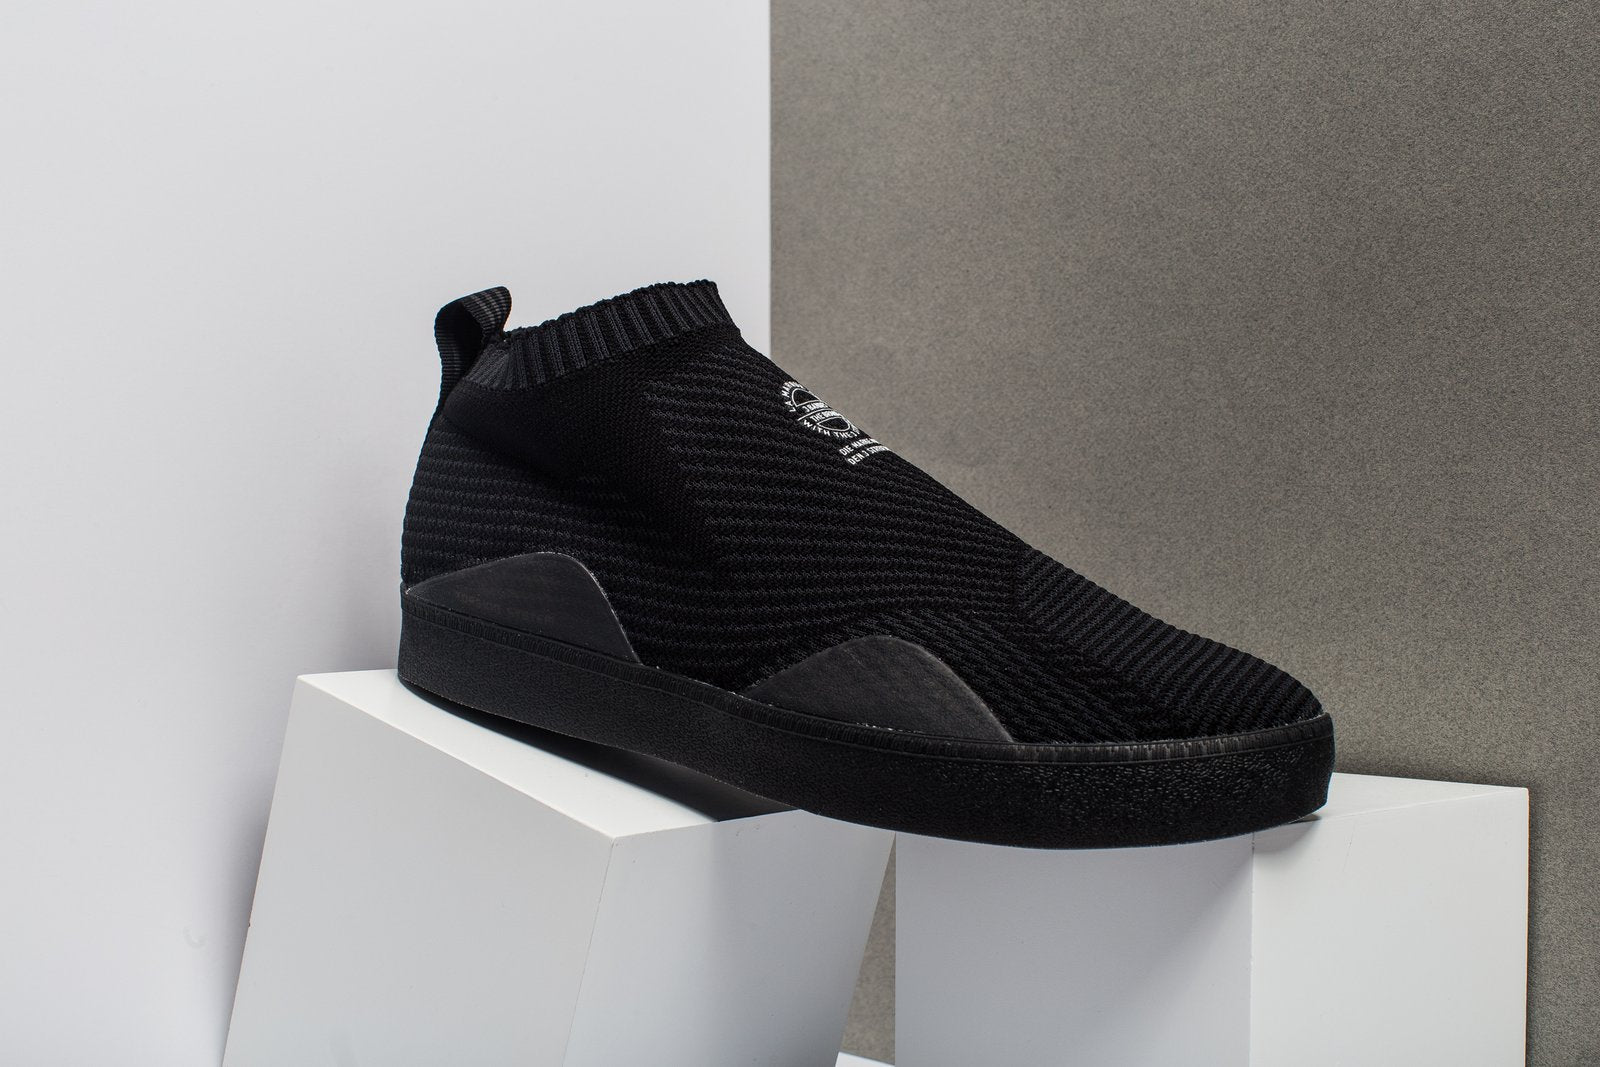 Https Onenessboutiquecom Daily Onenessboutique Dr Kevin Women Boot Casual Shoes 4023 Navy 38 Adidas 3st002 Cg5613 Onenessv1522264742